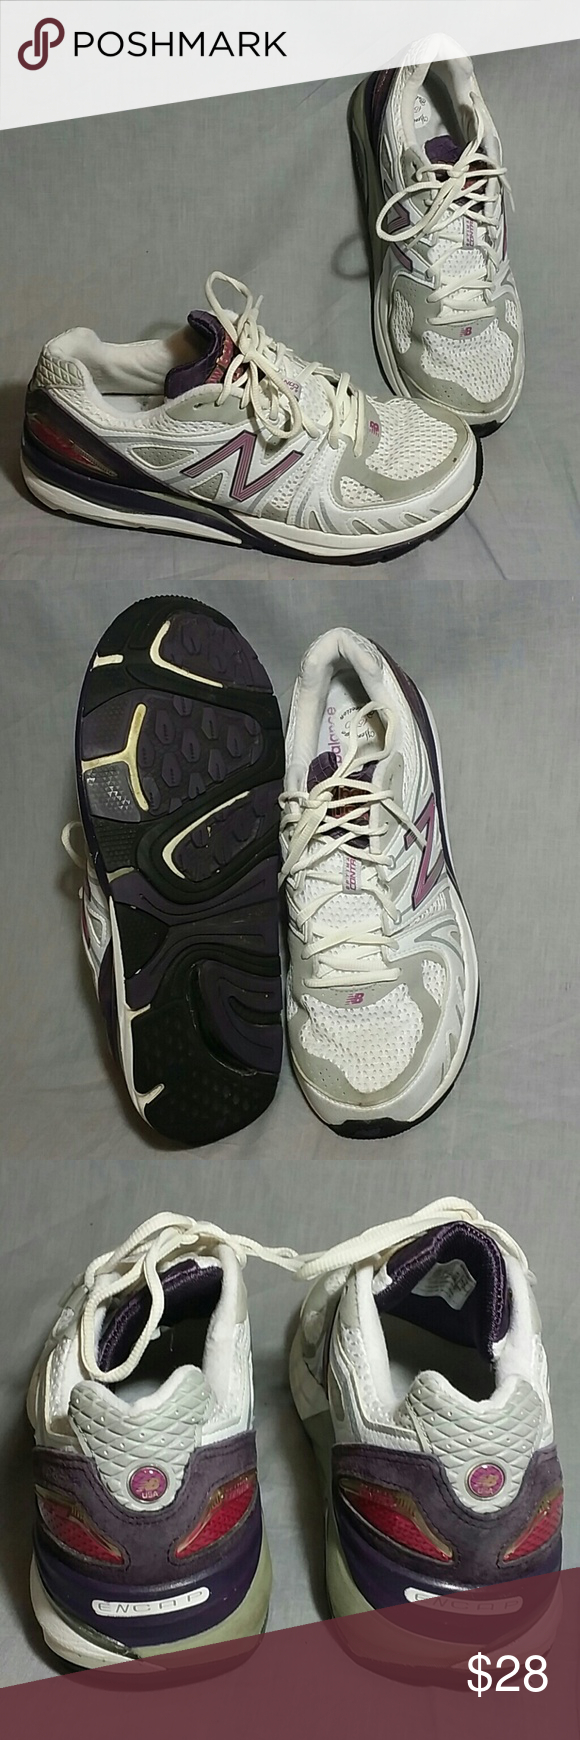 New balance ENCAP Shoes 11 M Running Lace ups Women's new balance ENCAP heritage 1540 shoes white/gray/purple. MADE IN USA  item is in a good condition. New Balance Shoes Sneakers